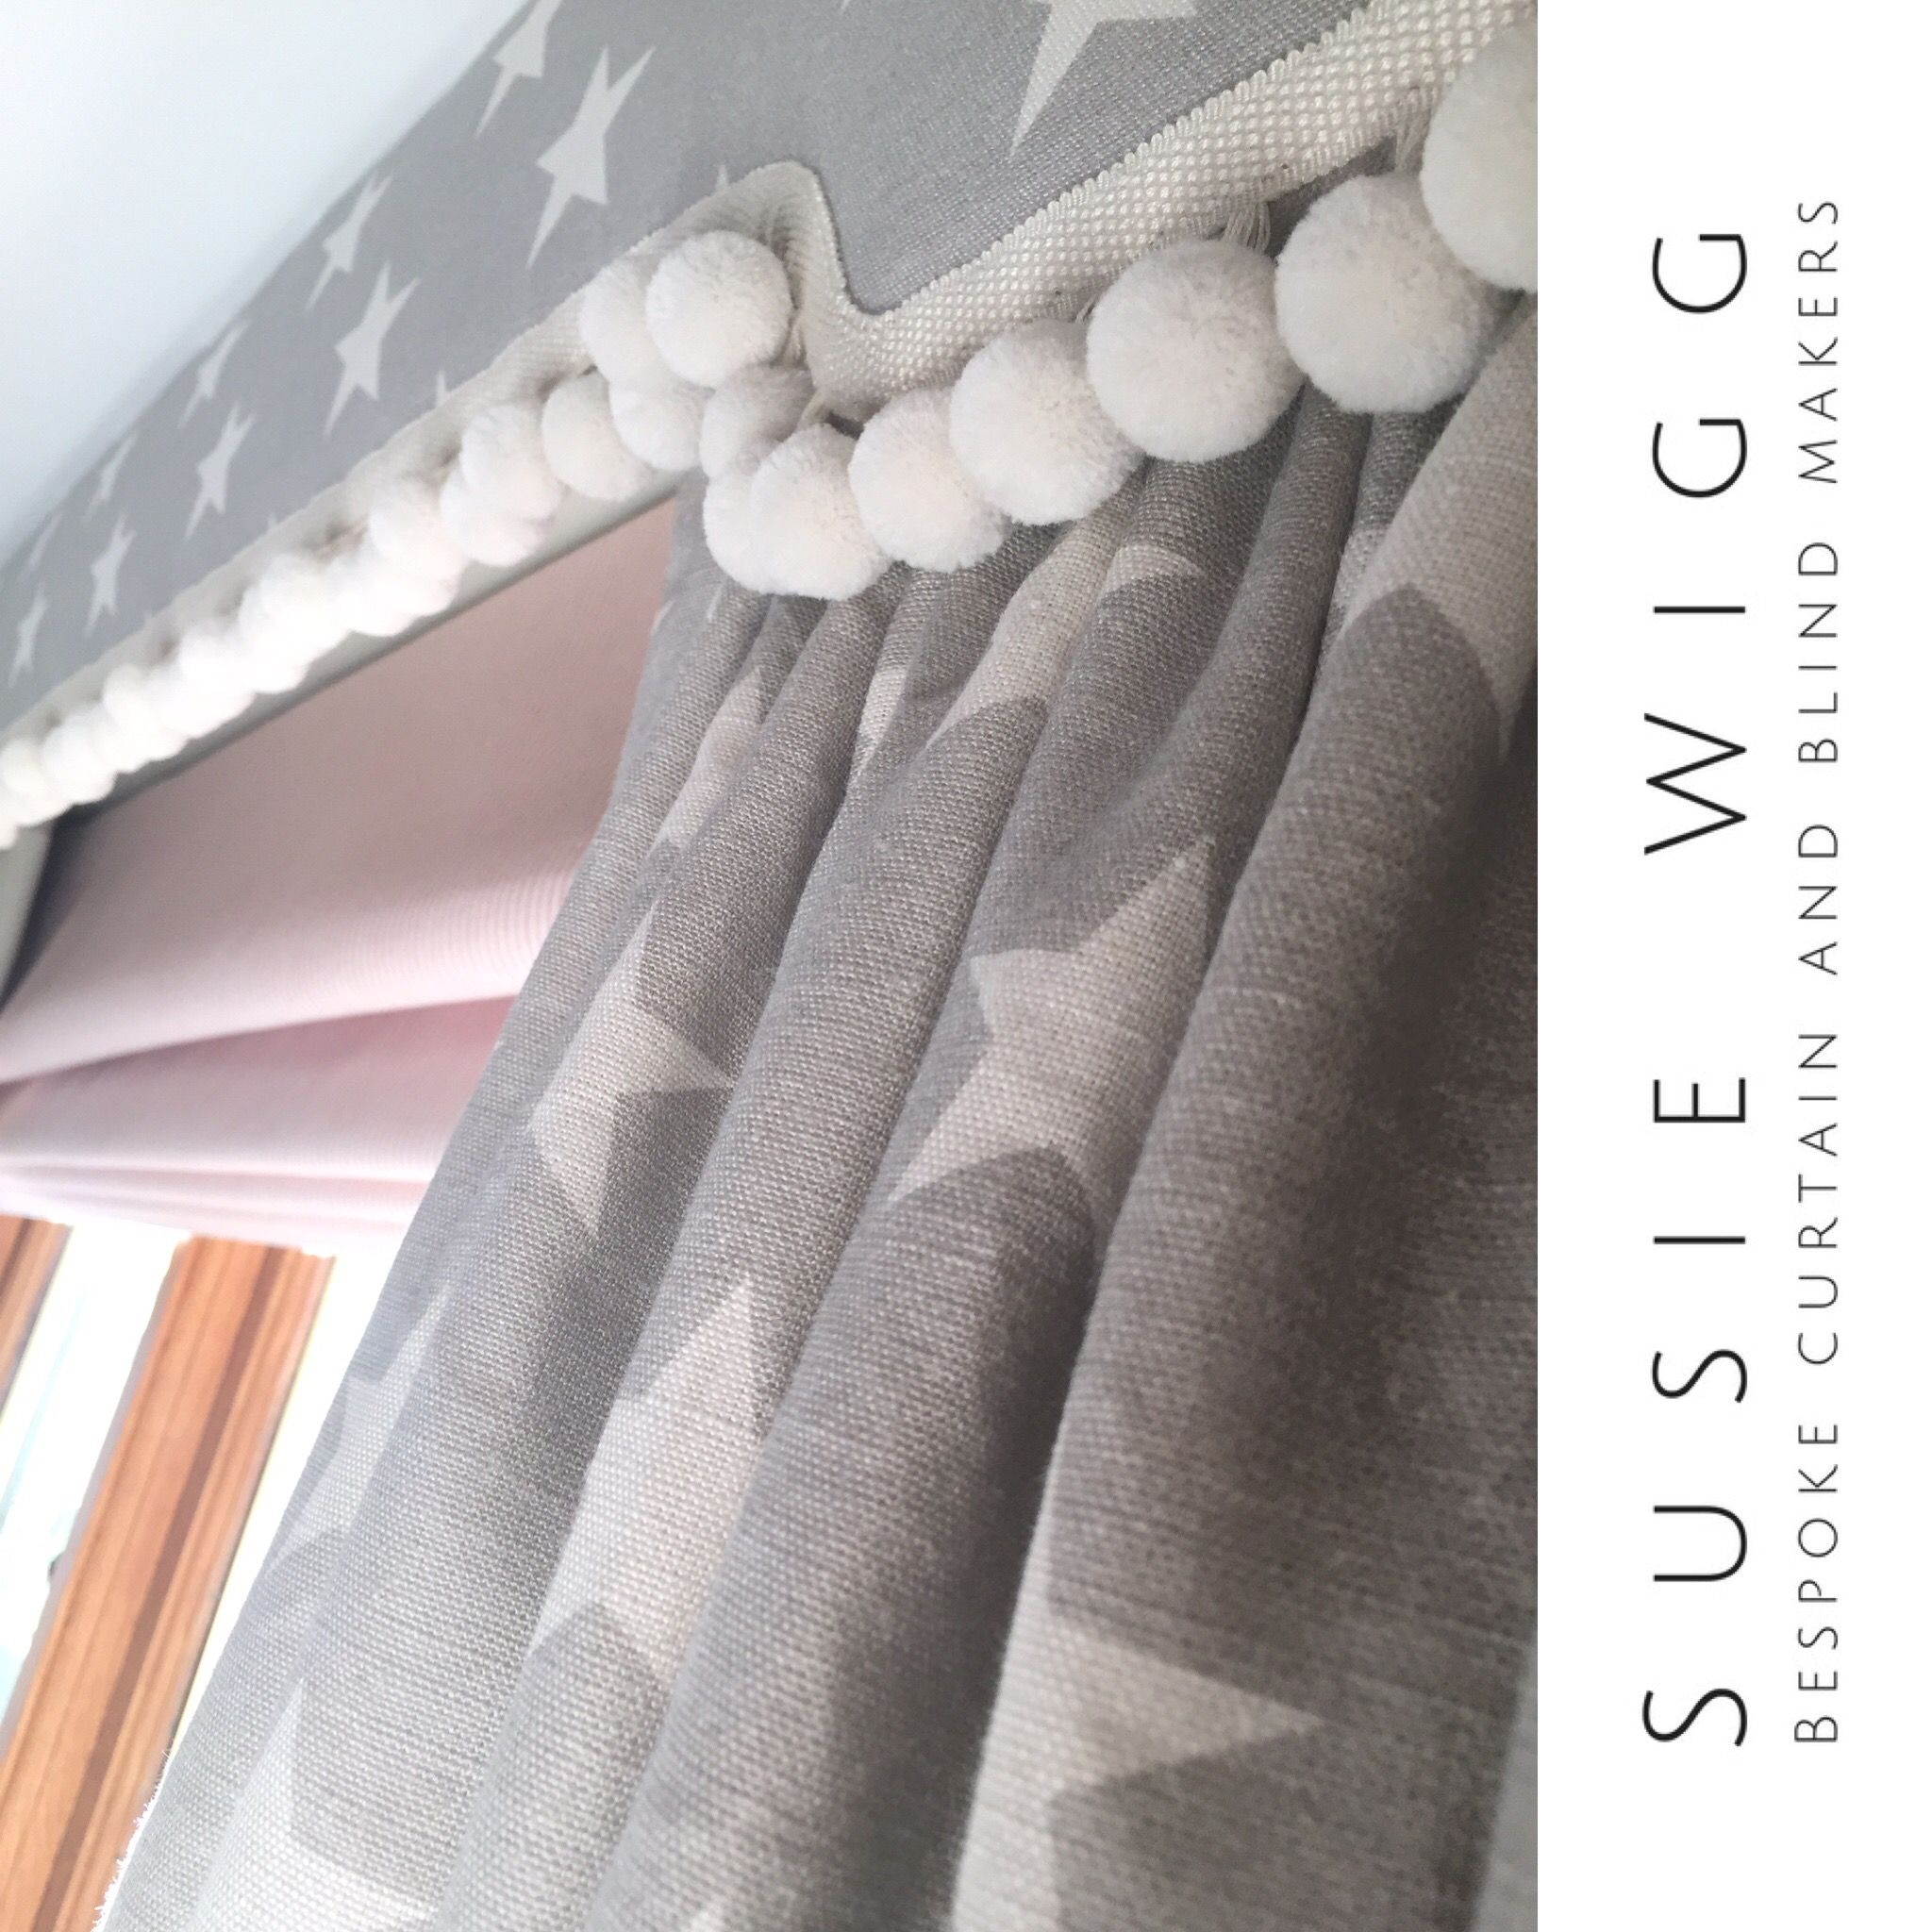 Sarah Hardaker Star Linen Curtains Swedish Grey With Shaped Upholstered Pelmet And Pom Pom Trimming Pink S Curtains With Blinds Curtains Bedroom Pink Curtains